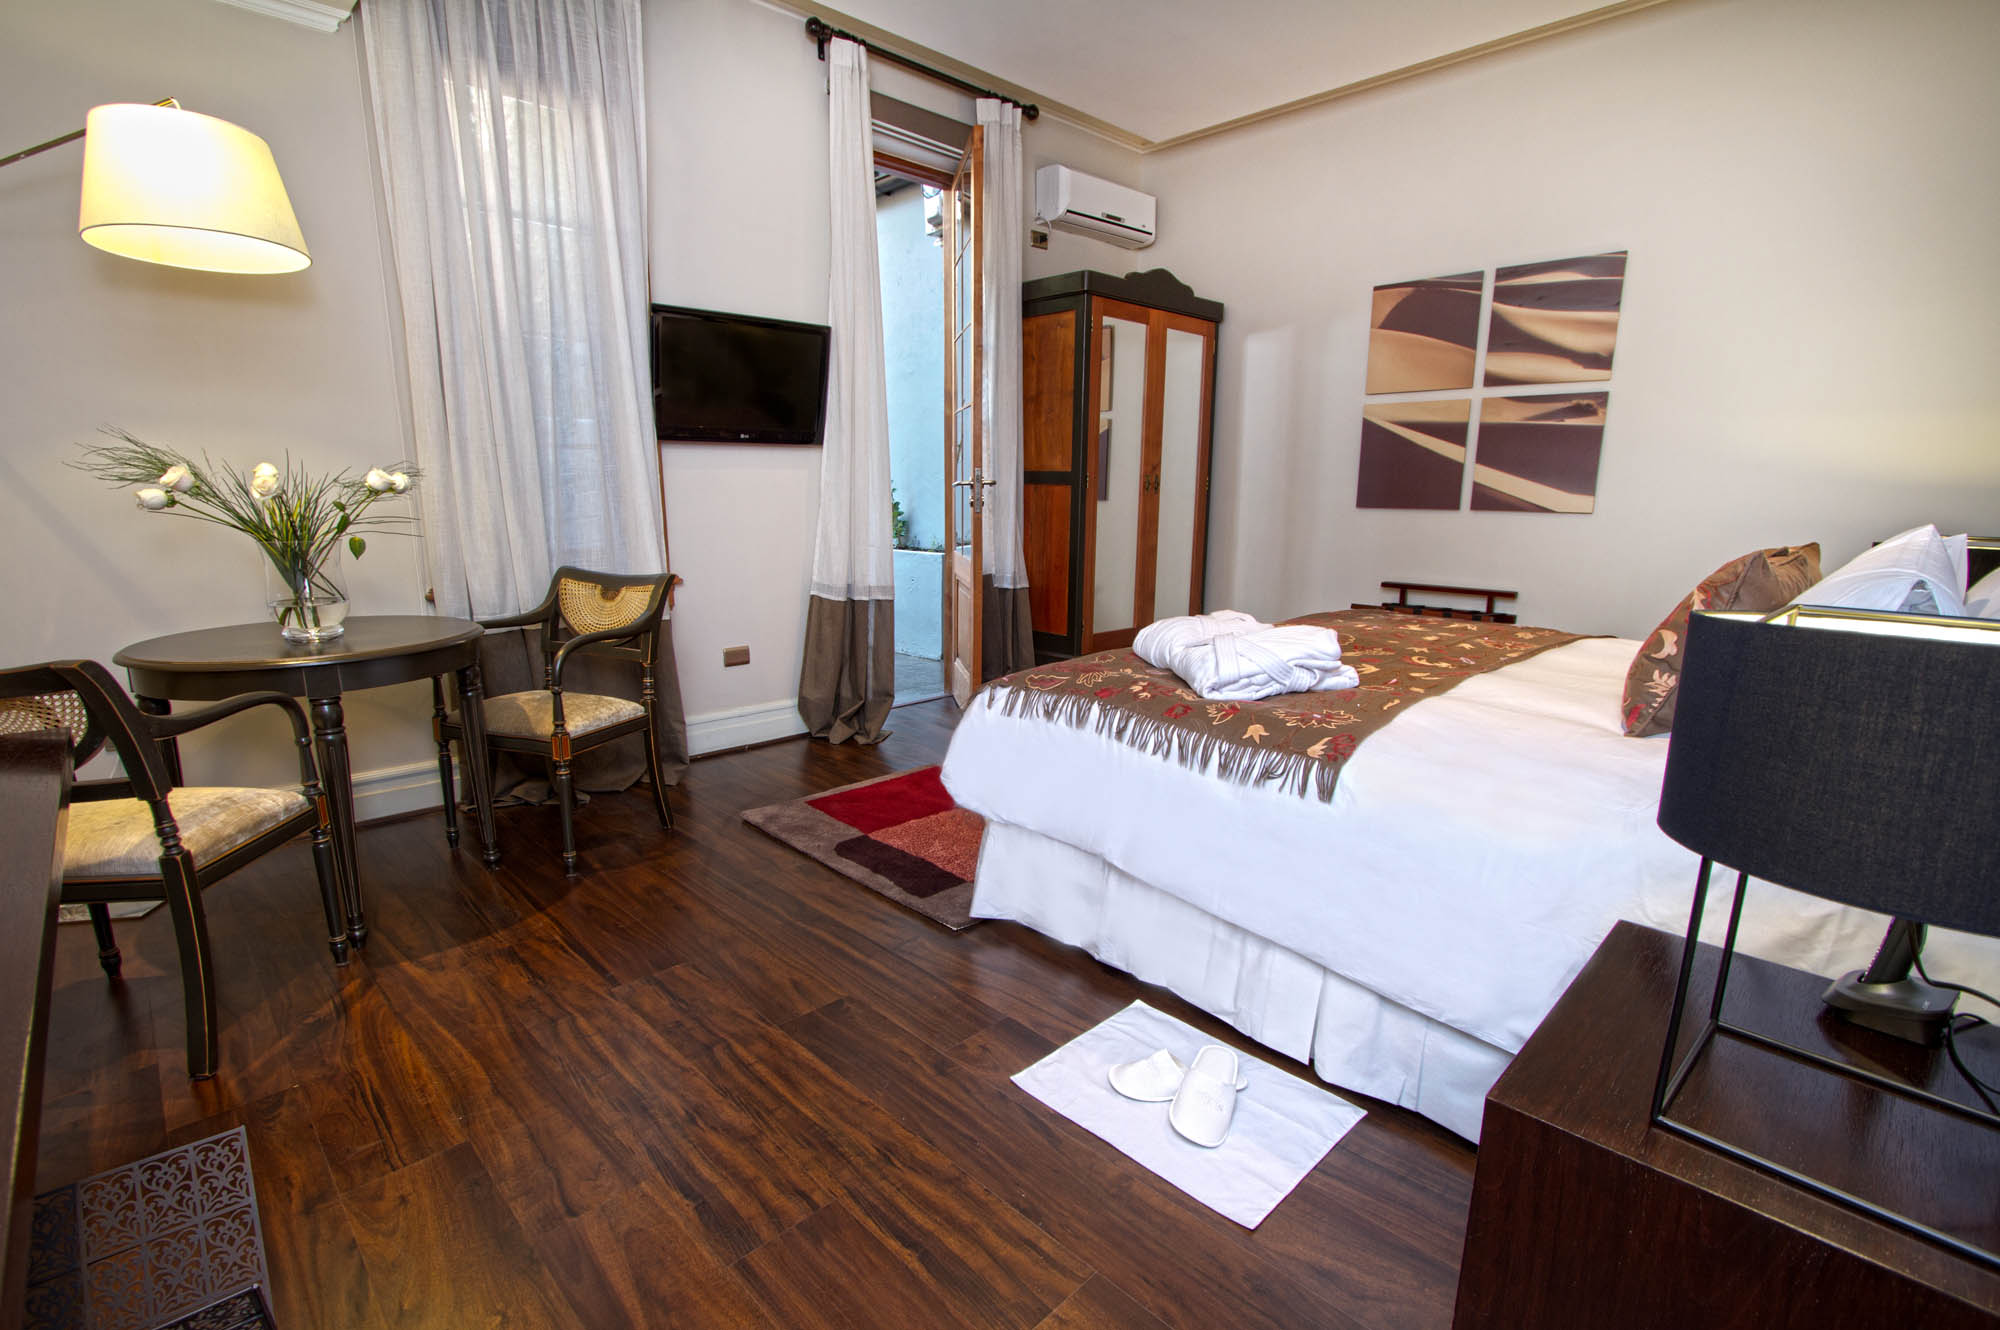 Lastarria boutique hotel in santiago information for Boutique hotel reservations